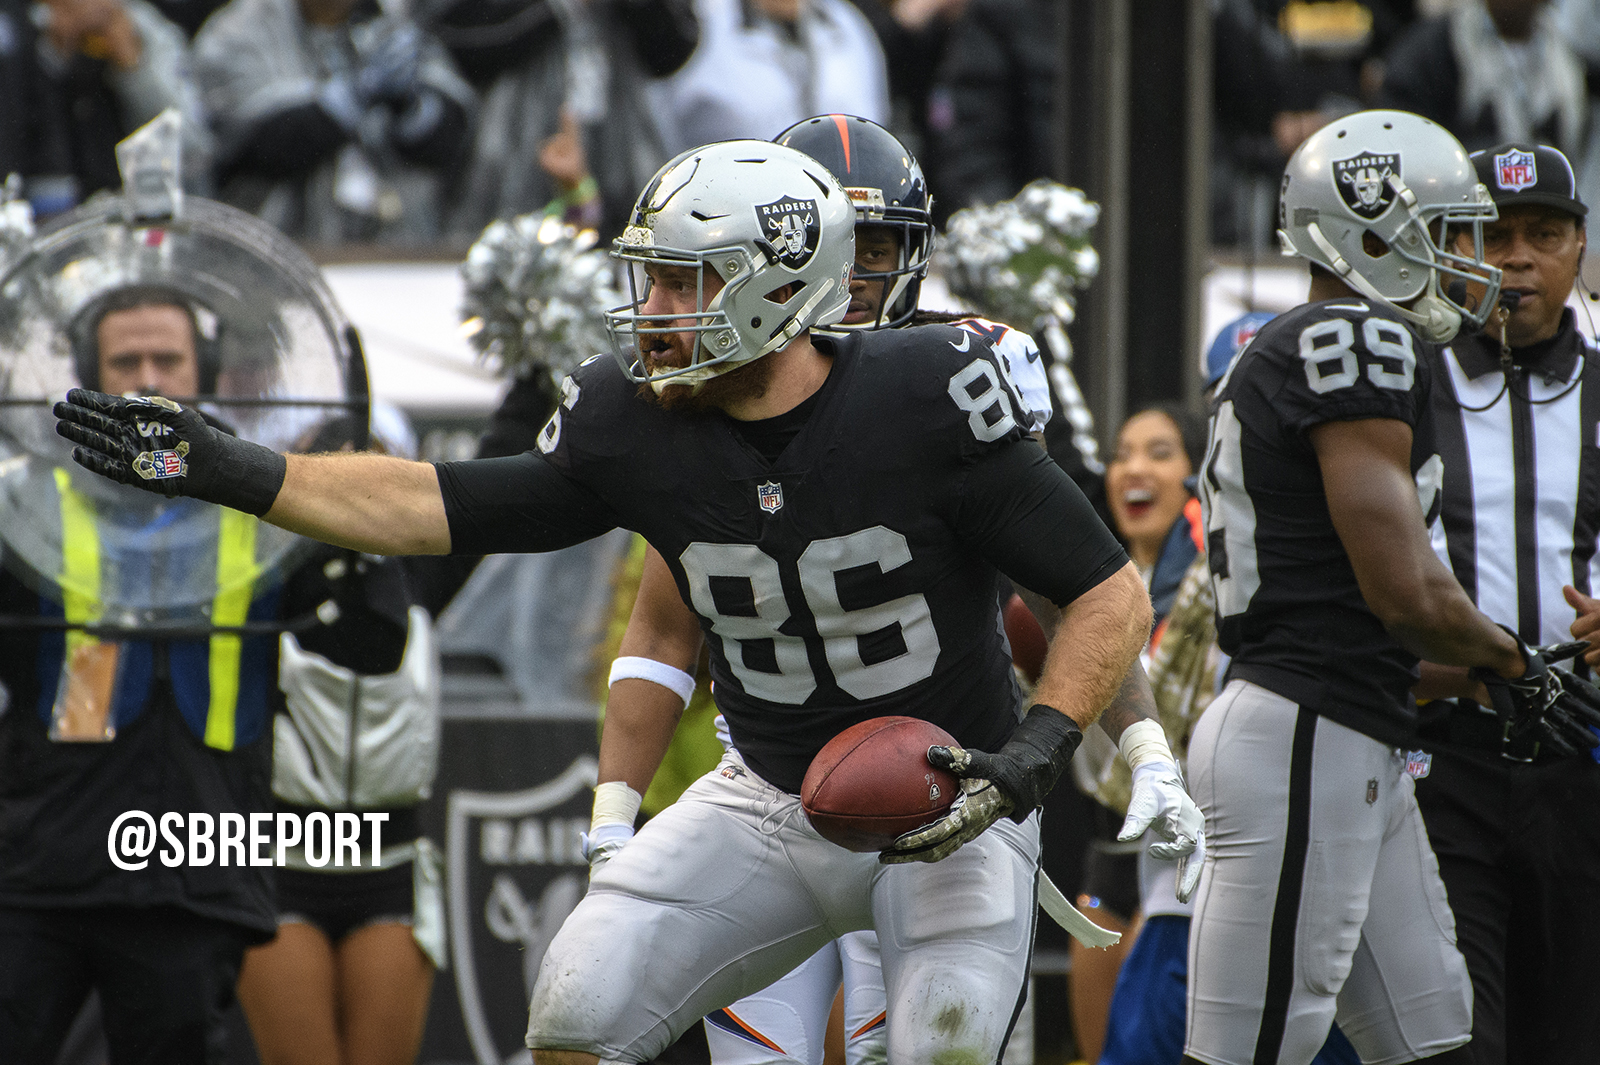 Raiders keep one of their own in the Silver & Black